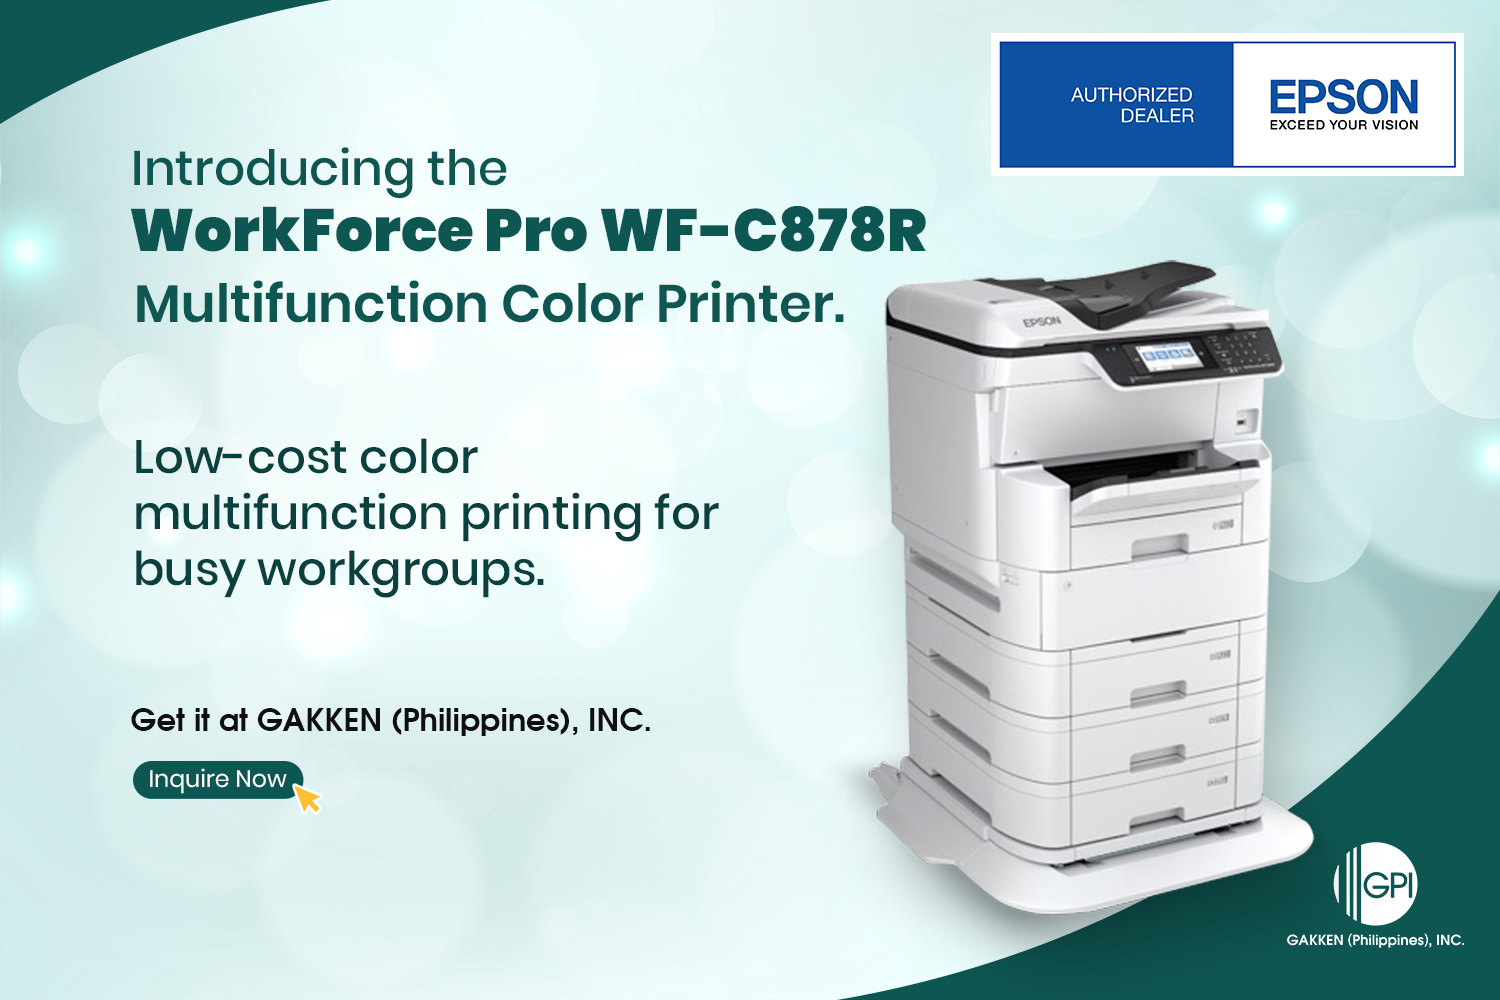 INTRODUCING THE WorkForce Pro WF-C878R: Unparalleled Functionality